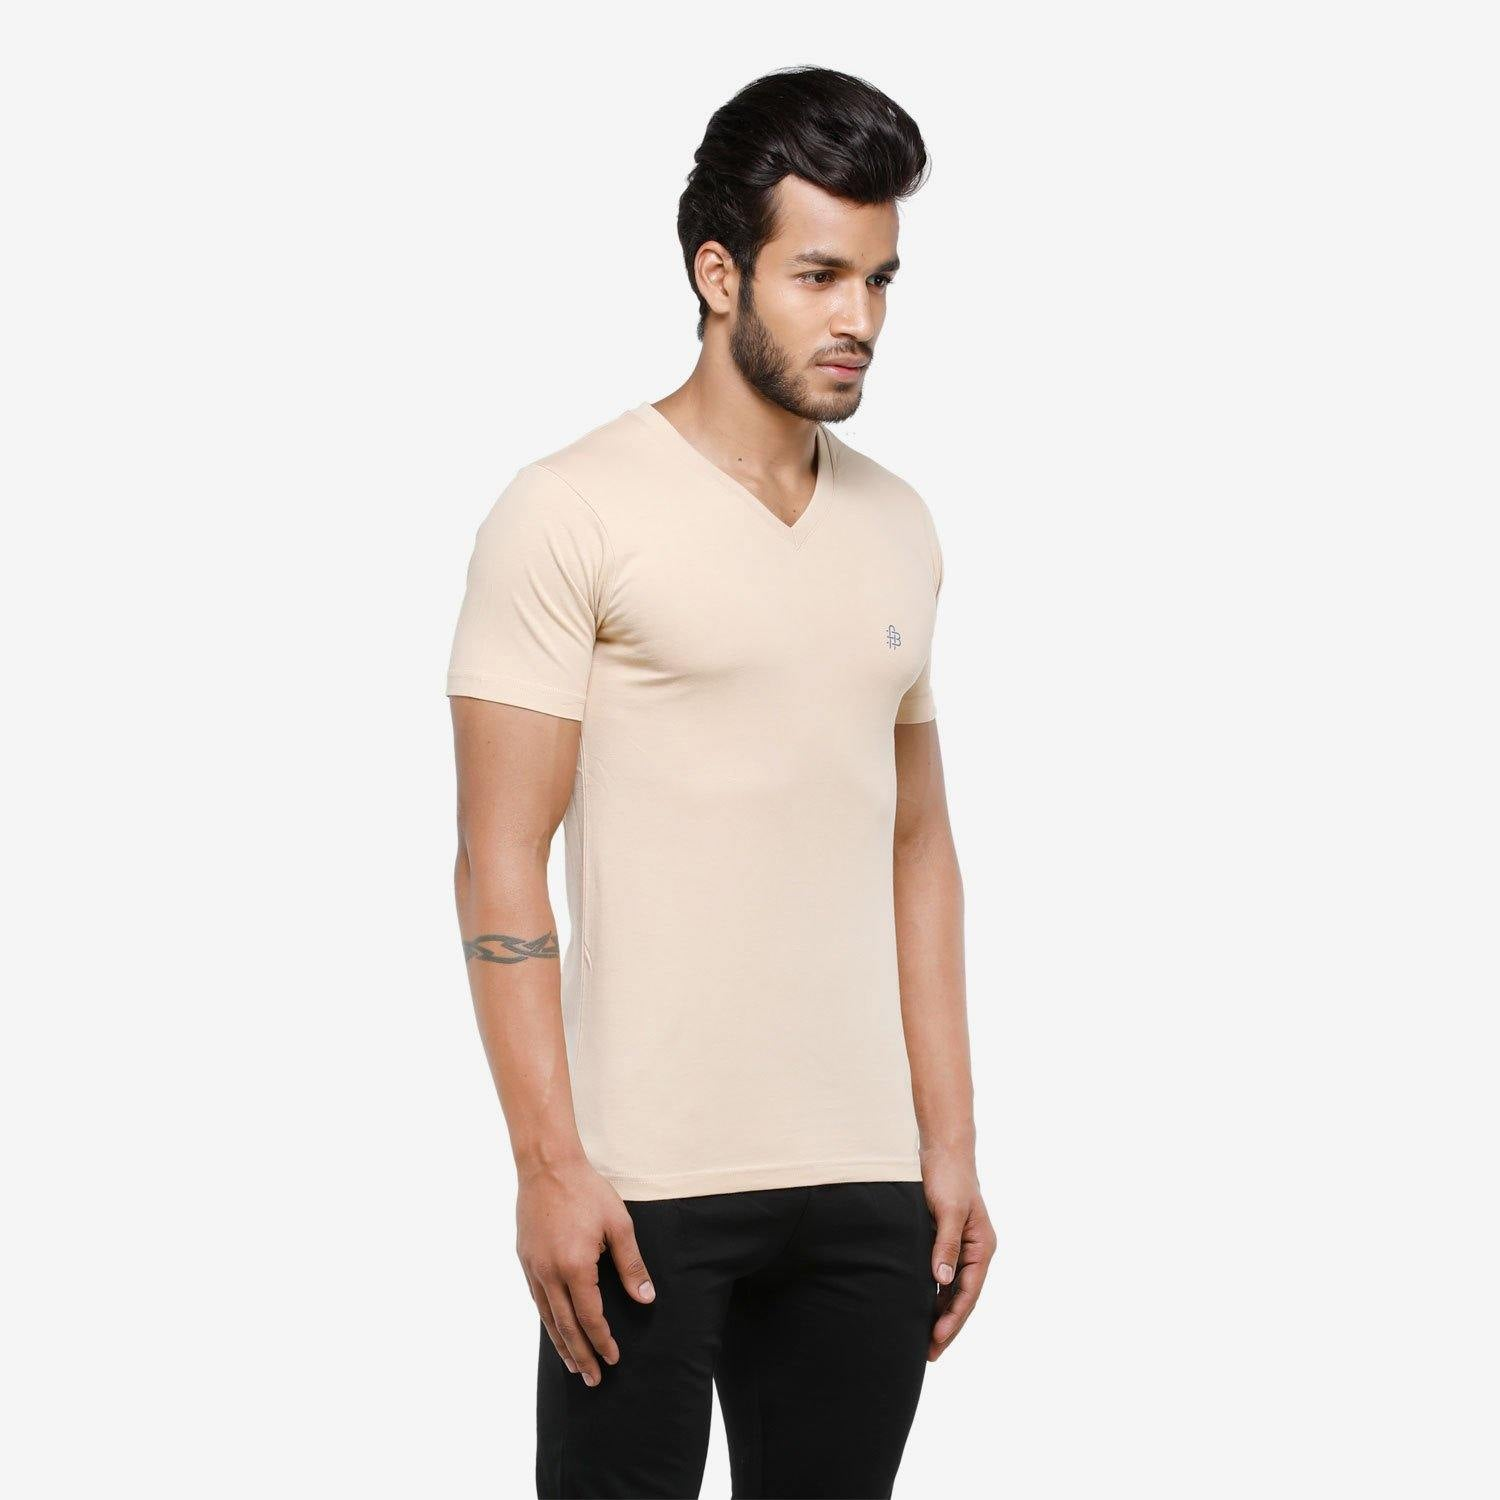 Men's Plain Half Sleeve Casual V-Neck  T-Shirt For Summer